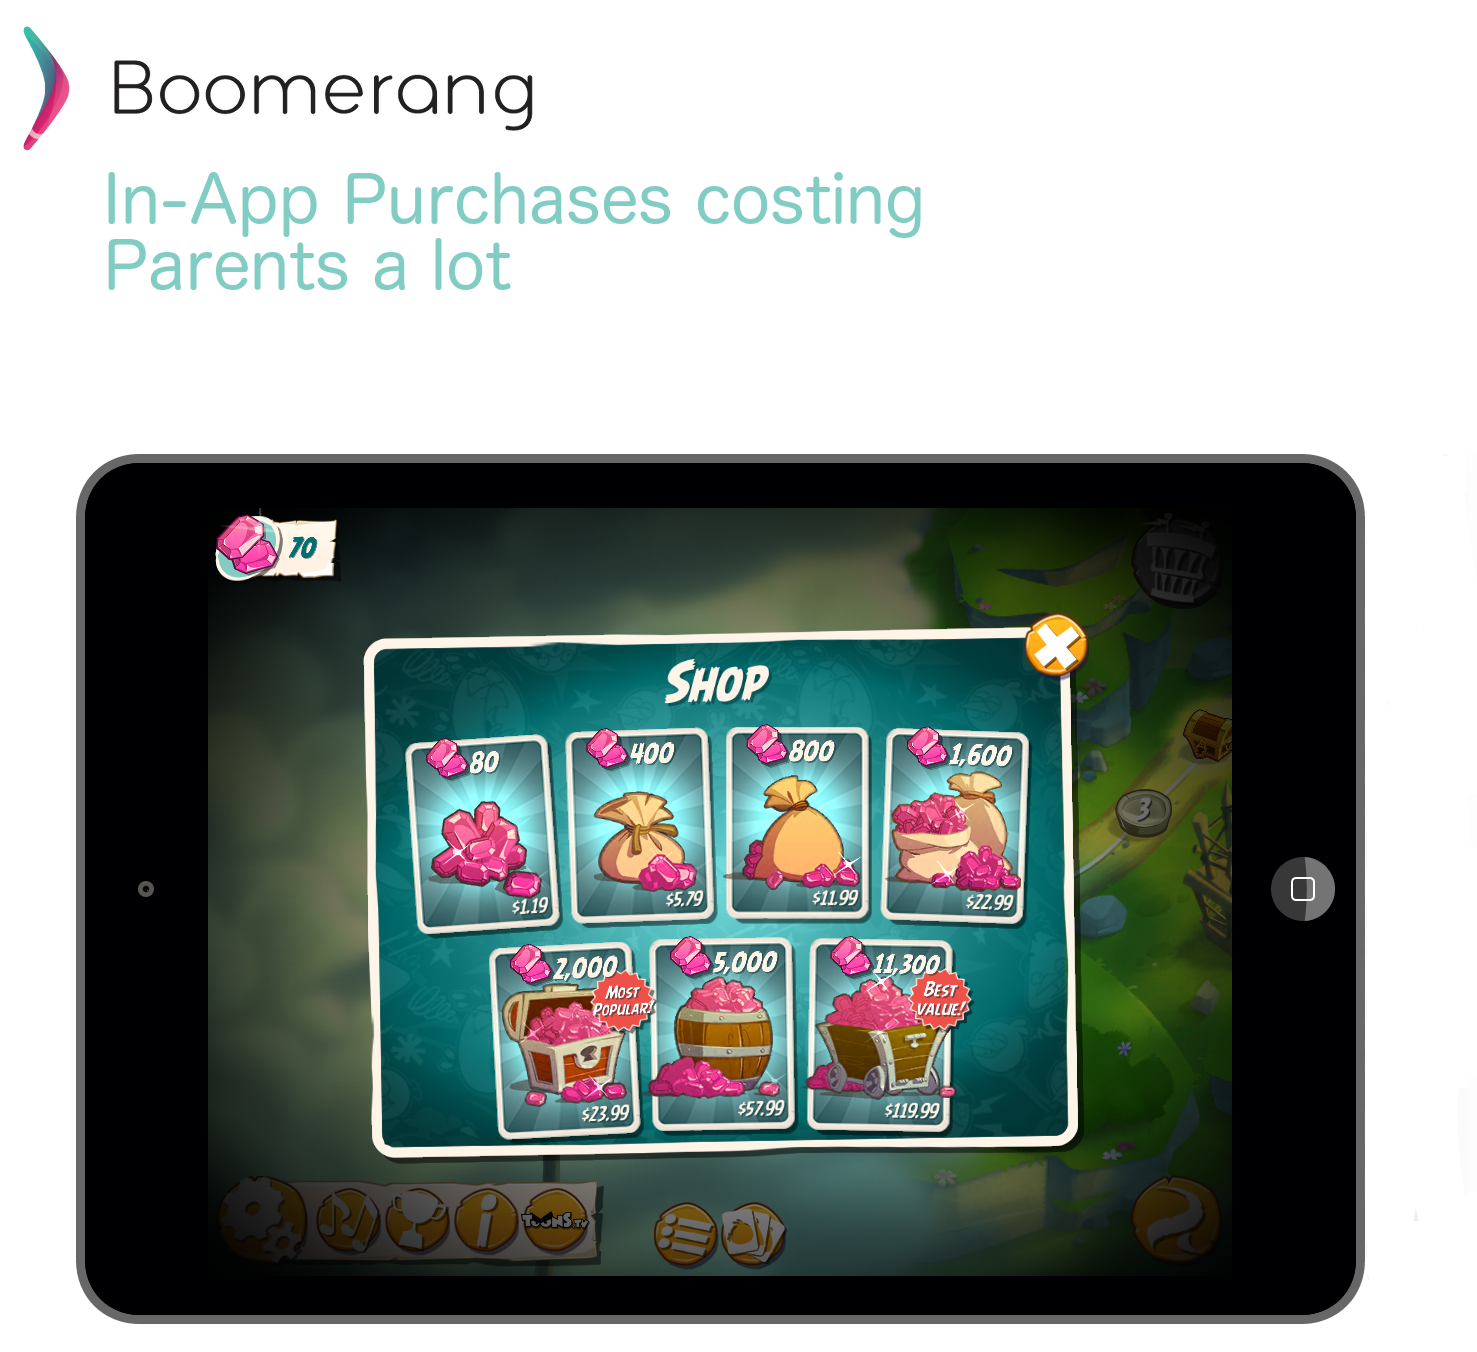 Angry Birds 2 In-App Purchases